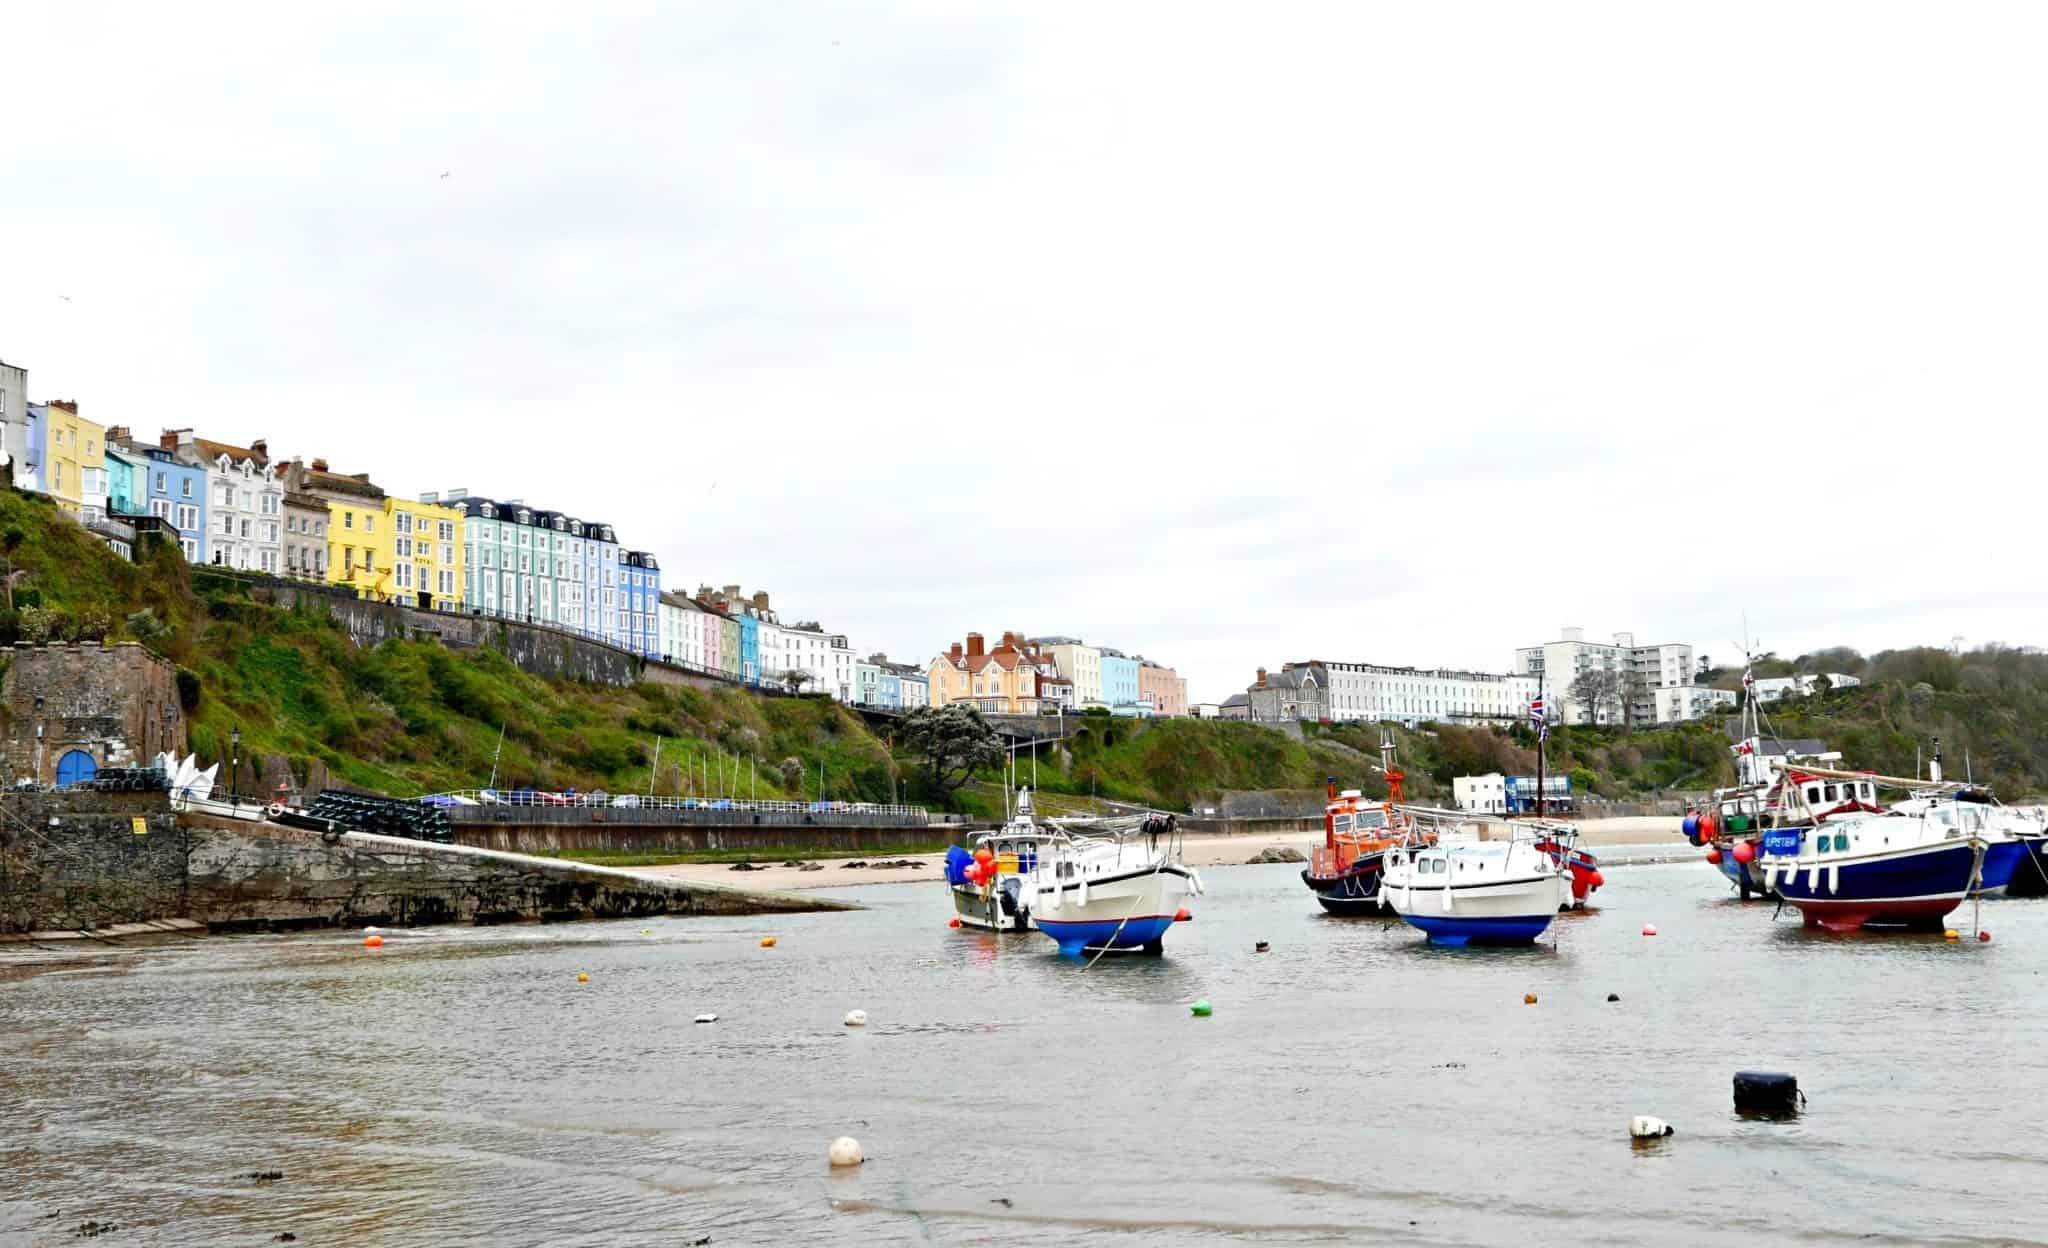 Boats at Tenby Harbour | My Travel Monkey